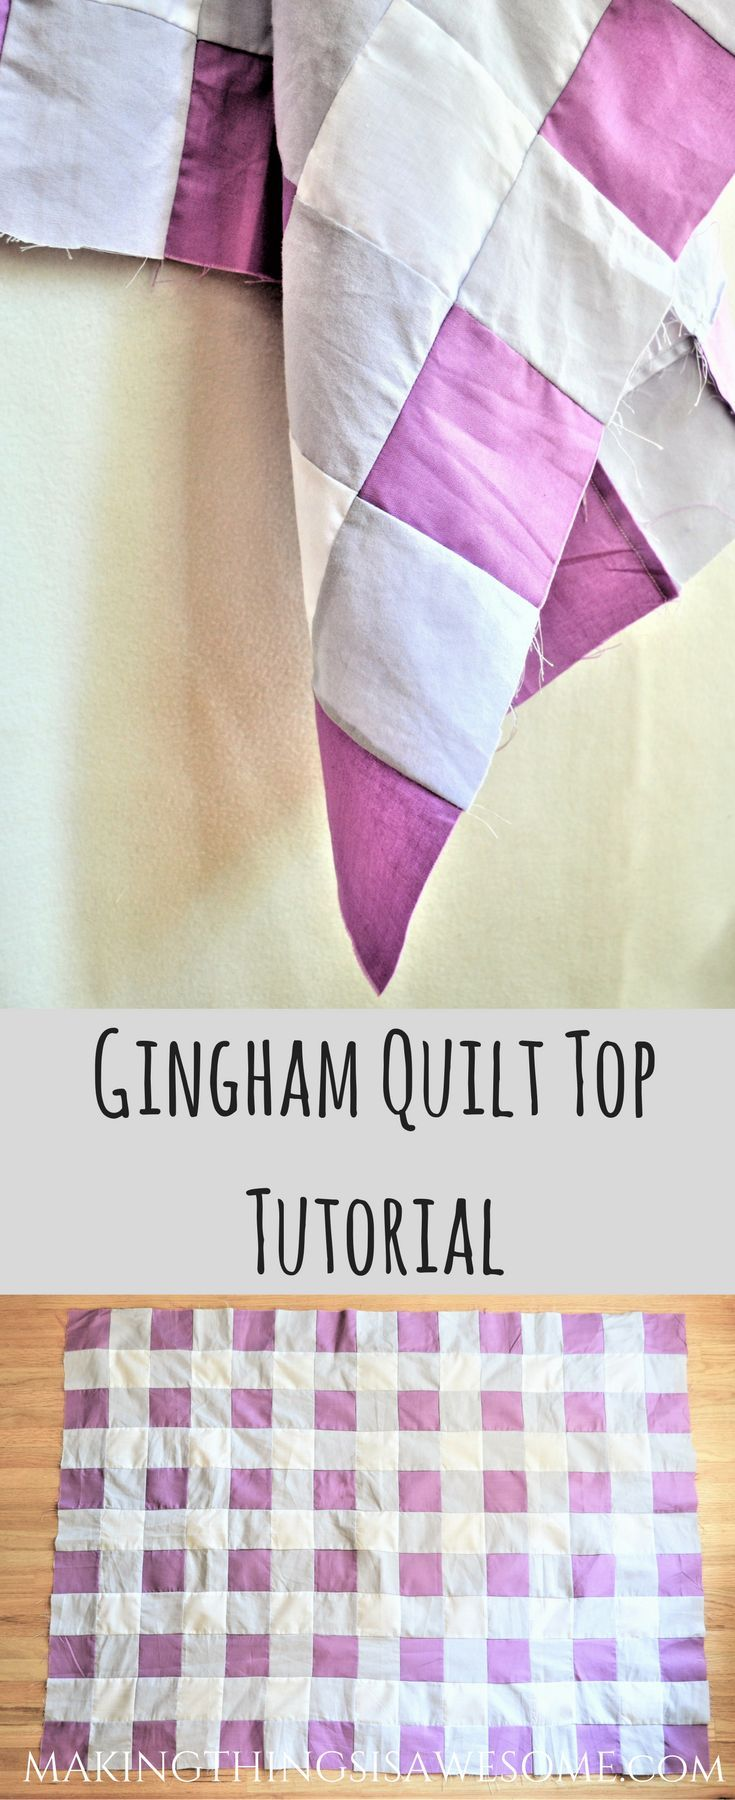 Gingham quilt top tutorial